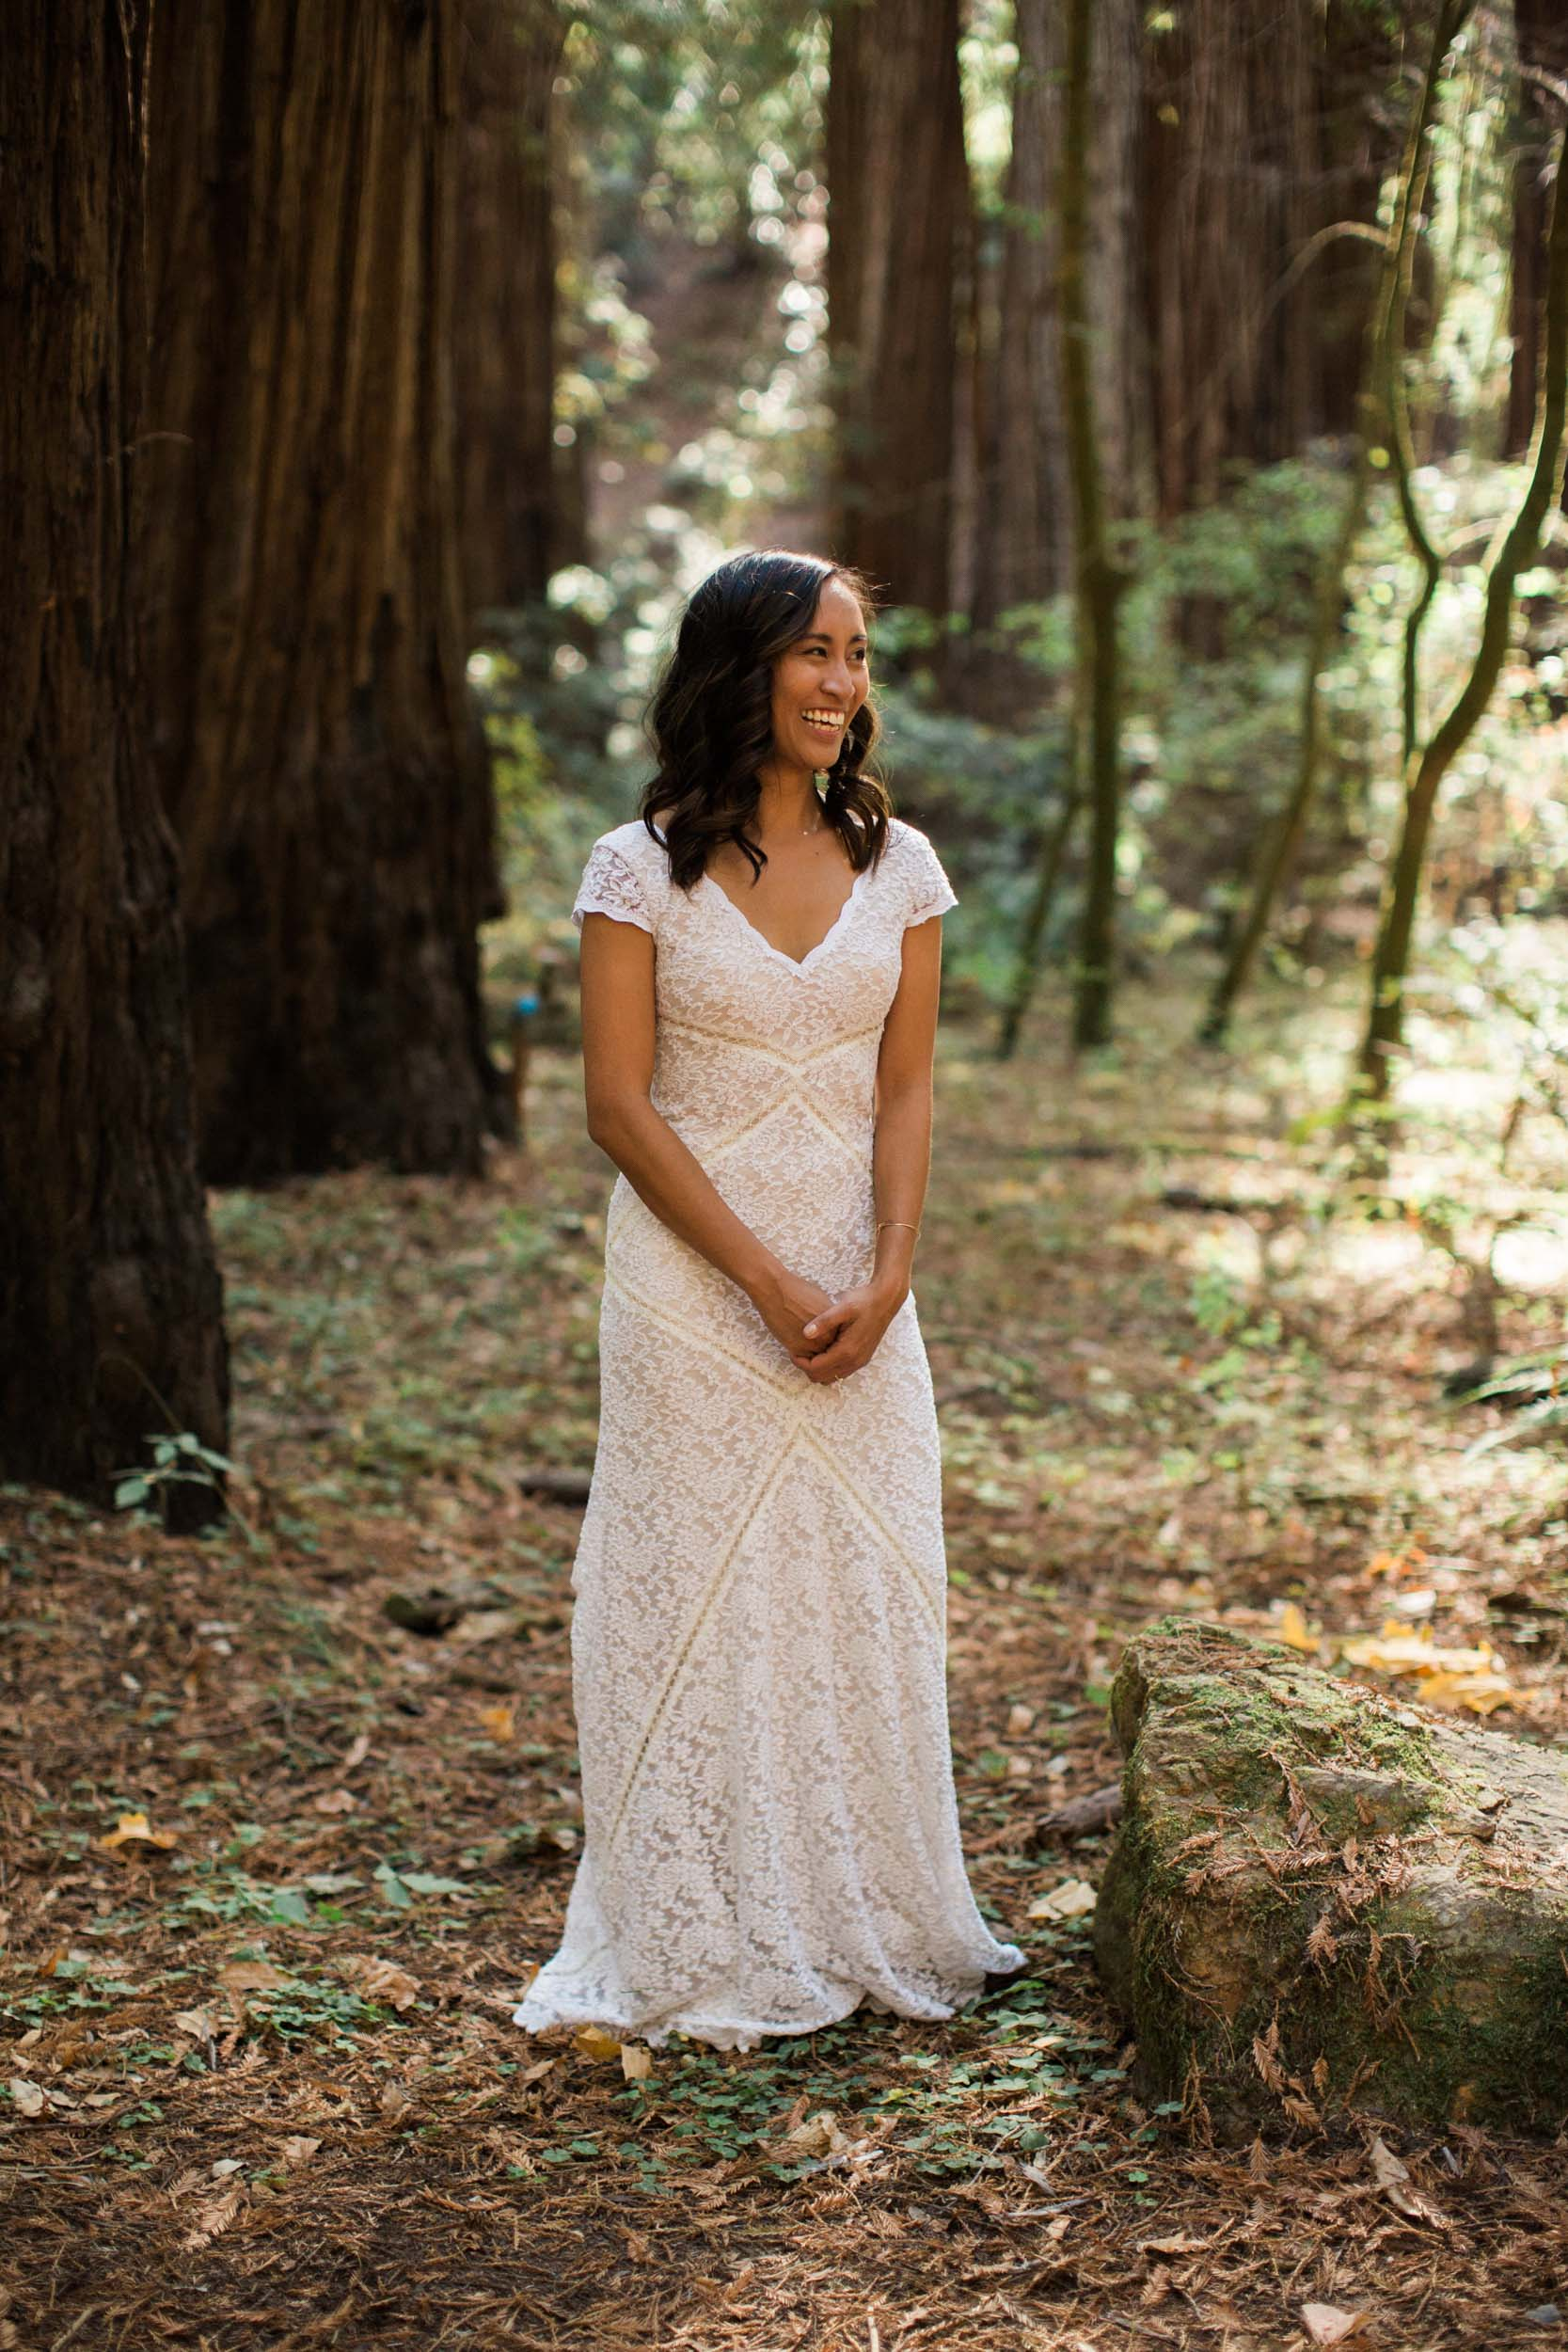 BKM-Photography-Russian-River-Wedding-Redwoods-Guerneville-California-Destination-Wedding-Photographer-0034.jpg